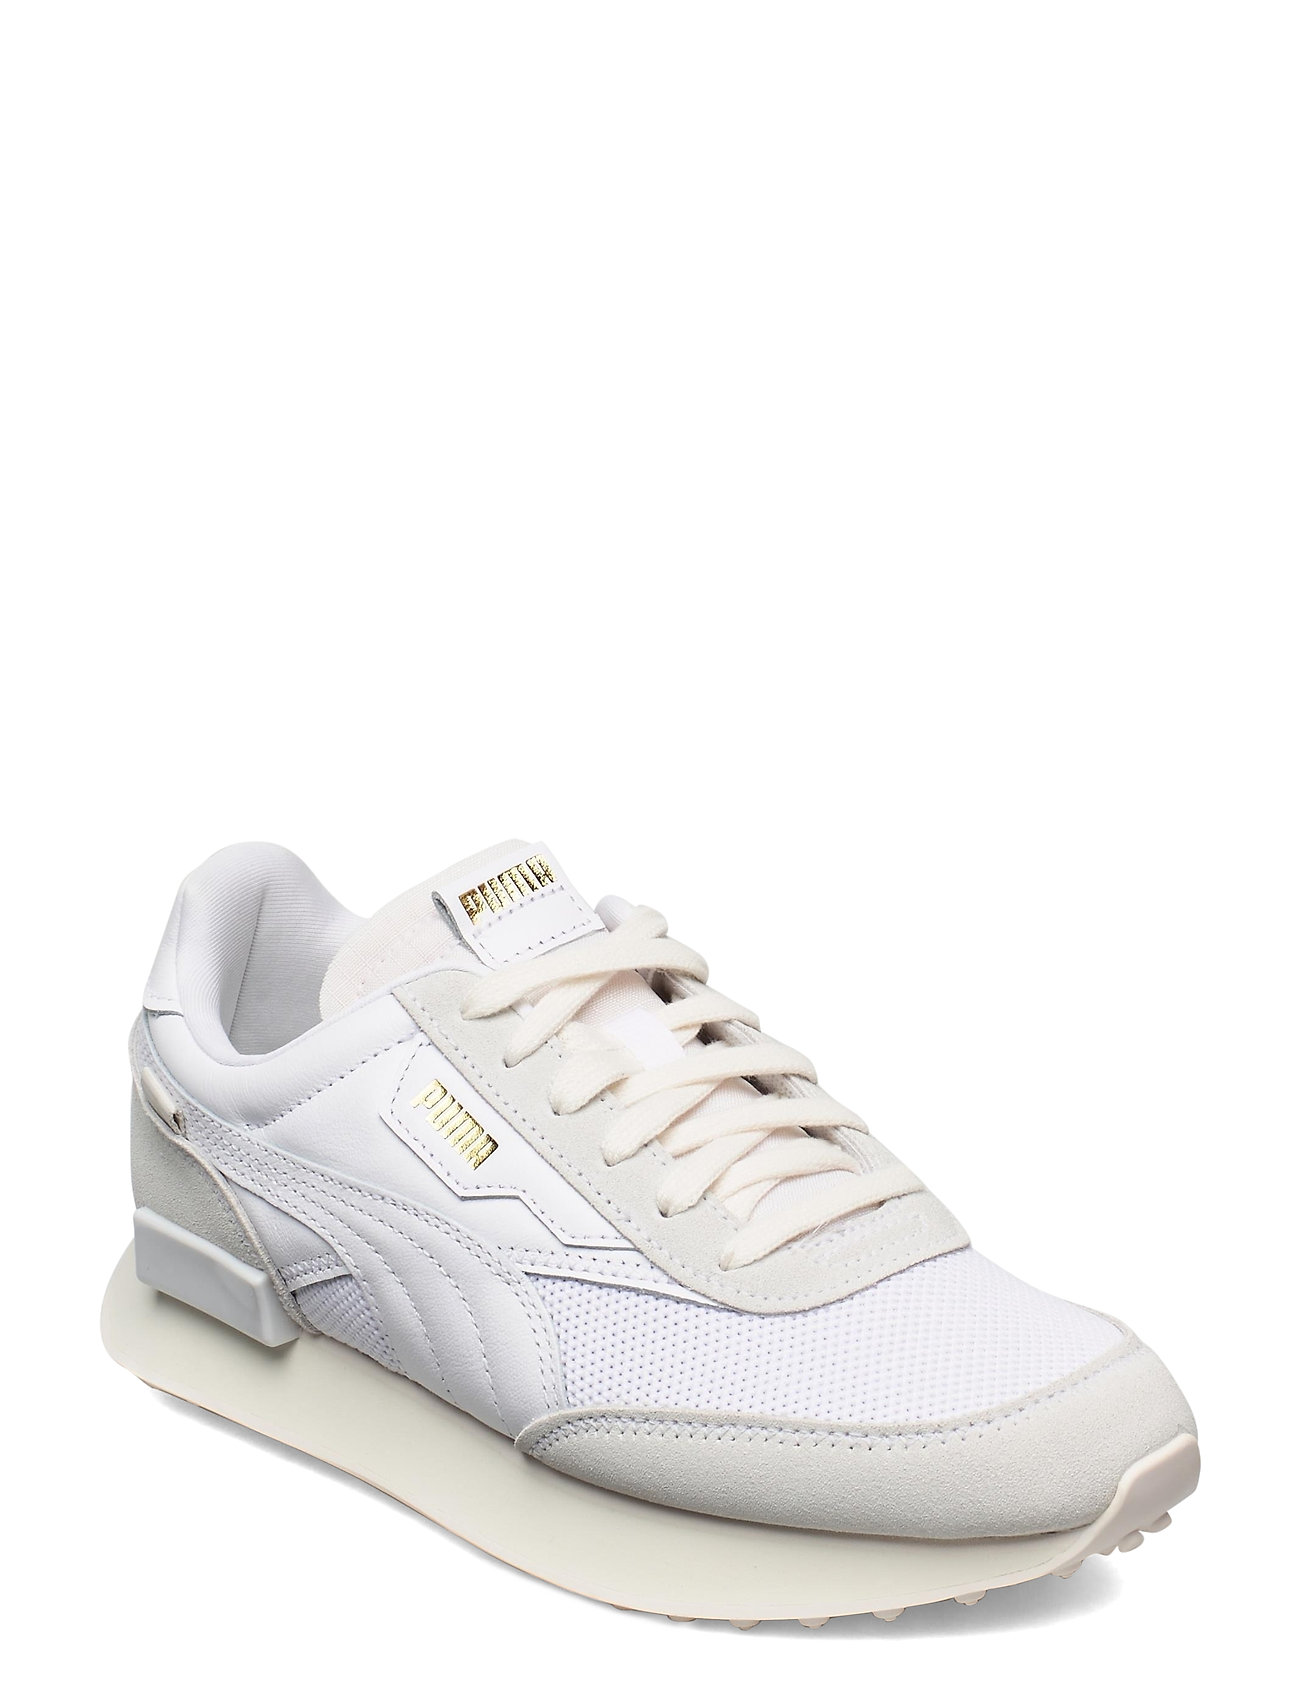 Image of Future Rider Luxe Low-top Sneakers Hvid PUMA (3463419055)